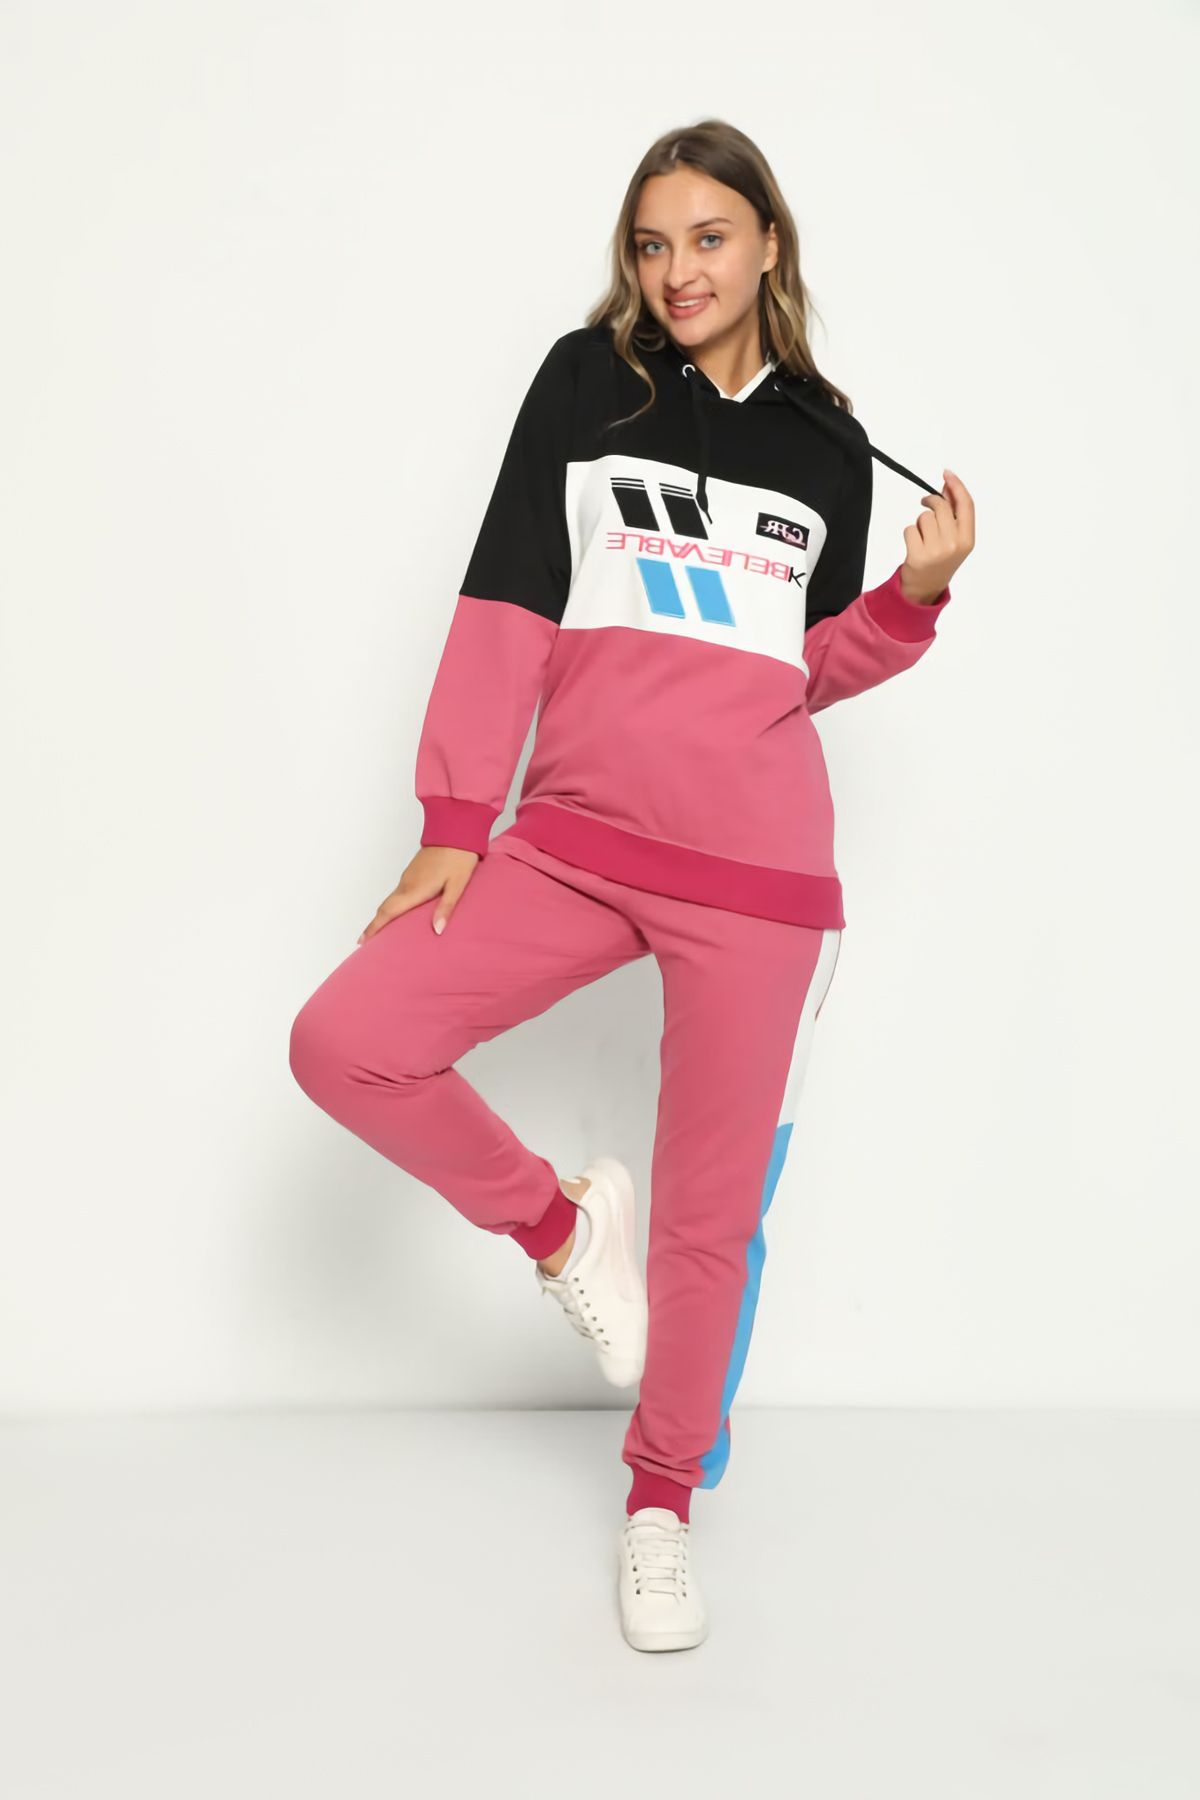 Women's Embroidery Detailed Hooded Tracksuit Set 3040 Fuchsia